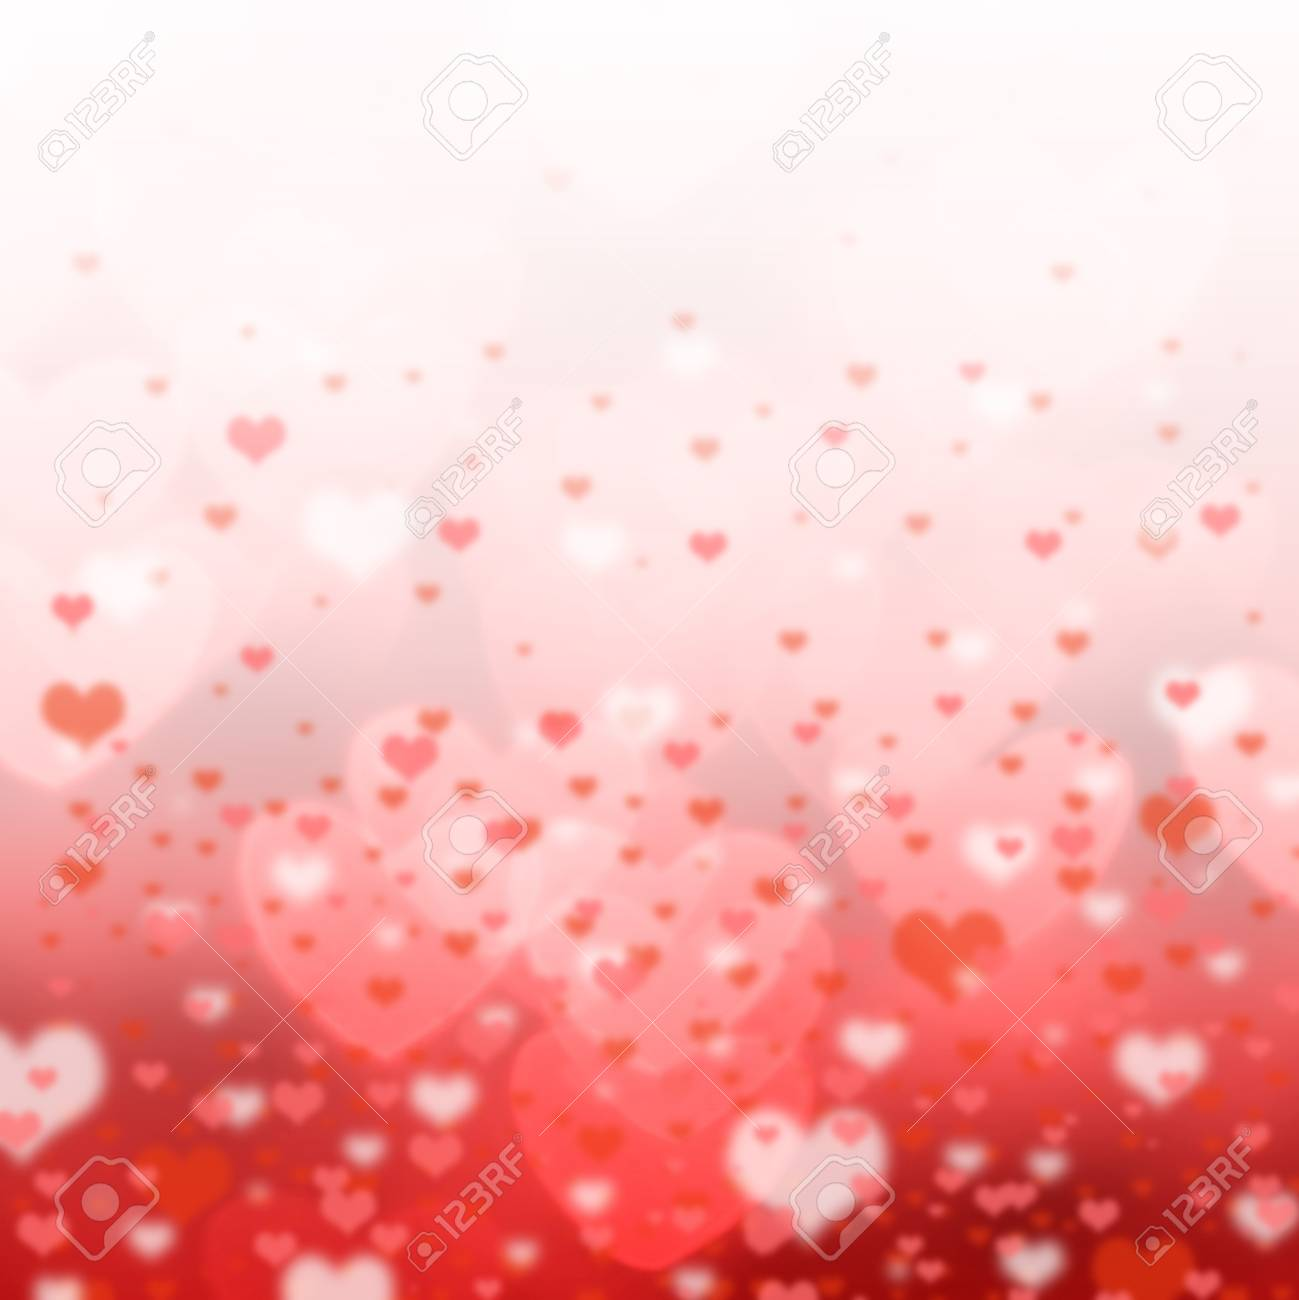 Lovely Background For Valentine Day And Wedding Stock Photo